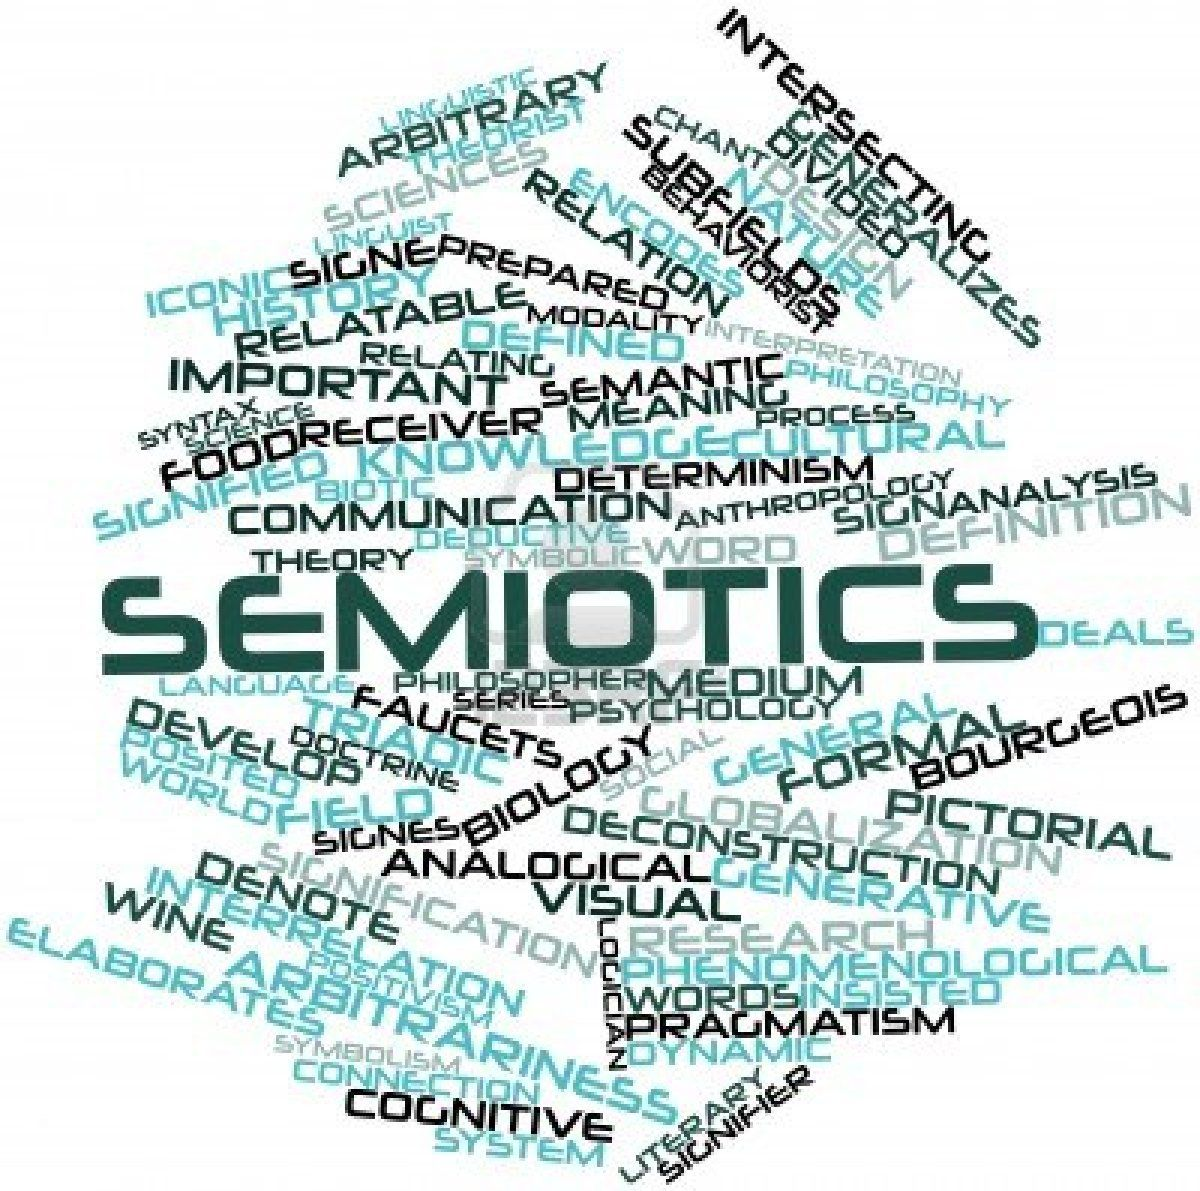 semiotics by holly and ban team e logos other and signs abstract word cloud for semiotics related tags and terms